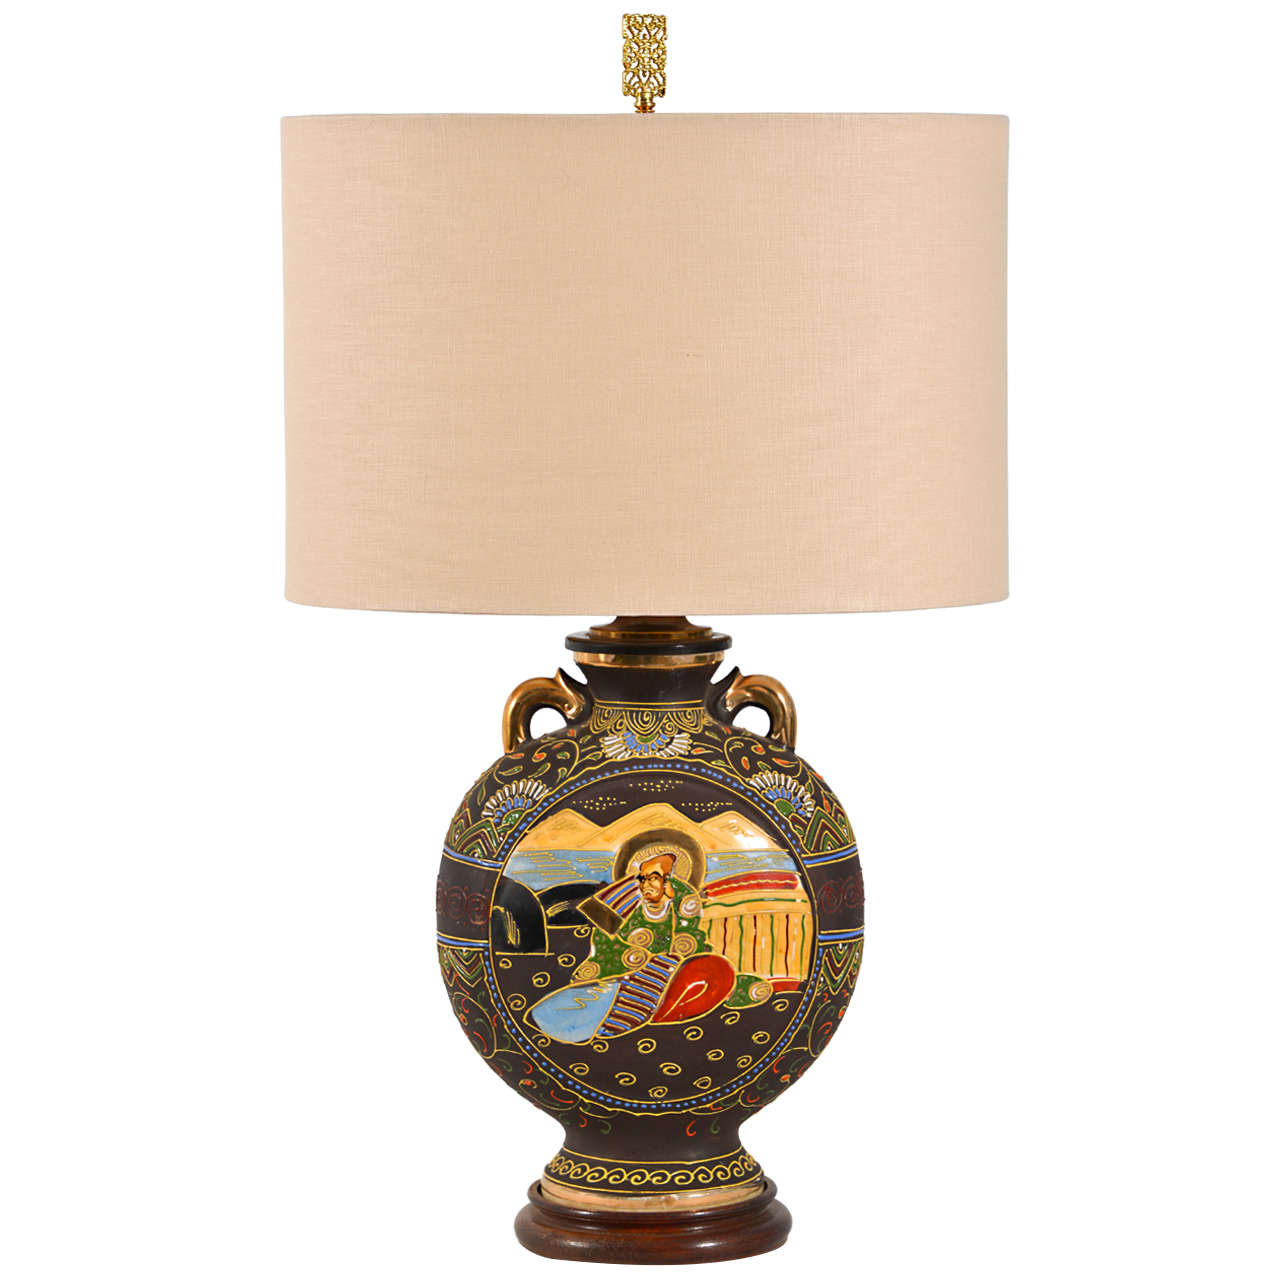 Japanese Satsuma Vase As A Table Lamp For Sale